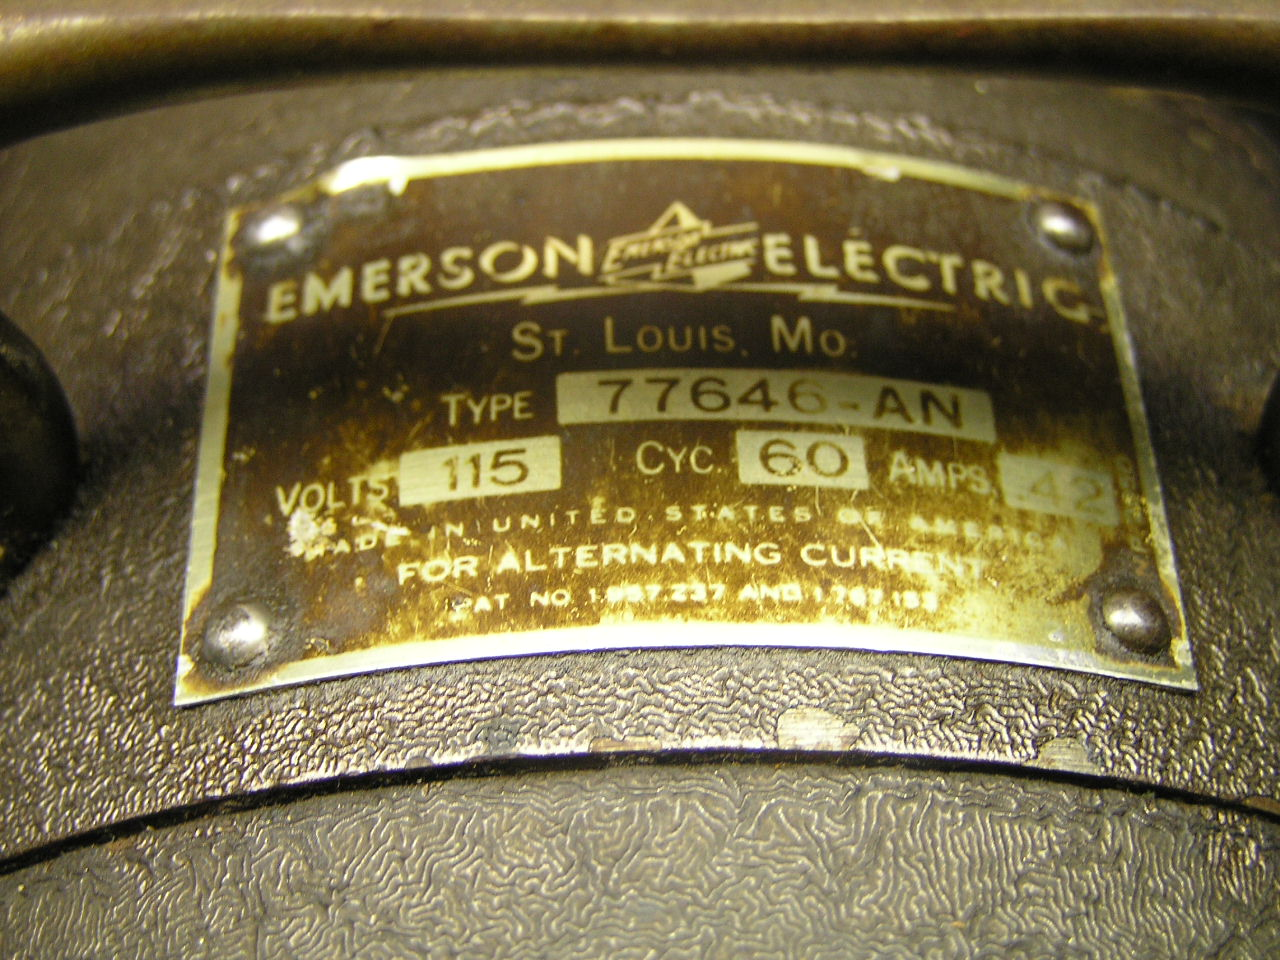 Emerson 77646 Fan Wiring Hunter Ceiling Diagram Antique An Pre 1950 Collectors